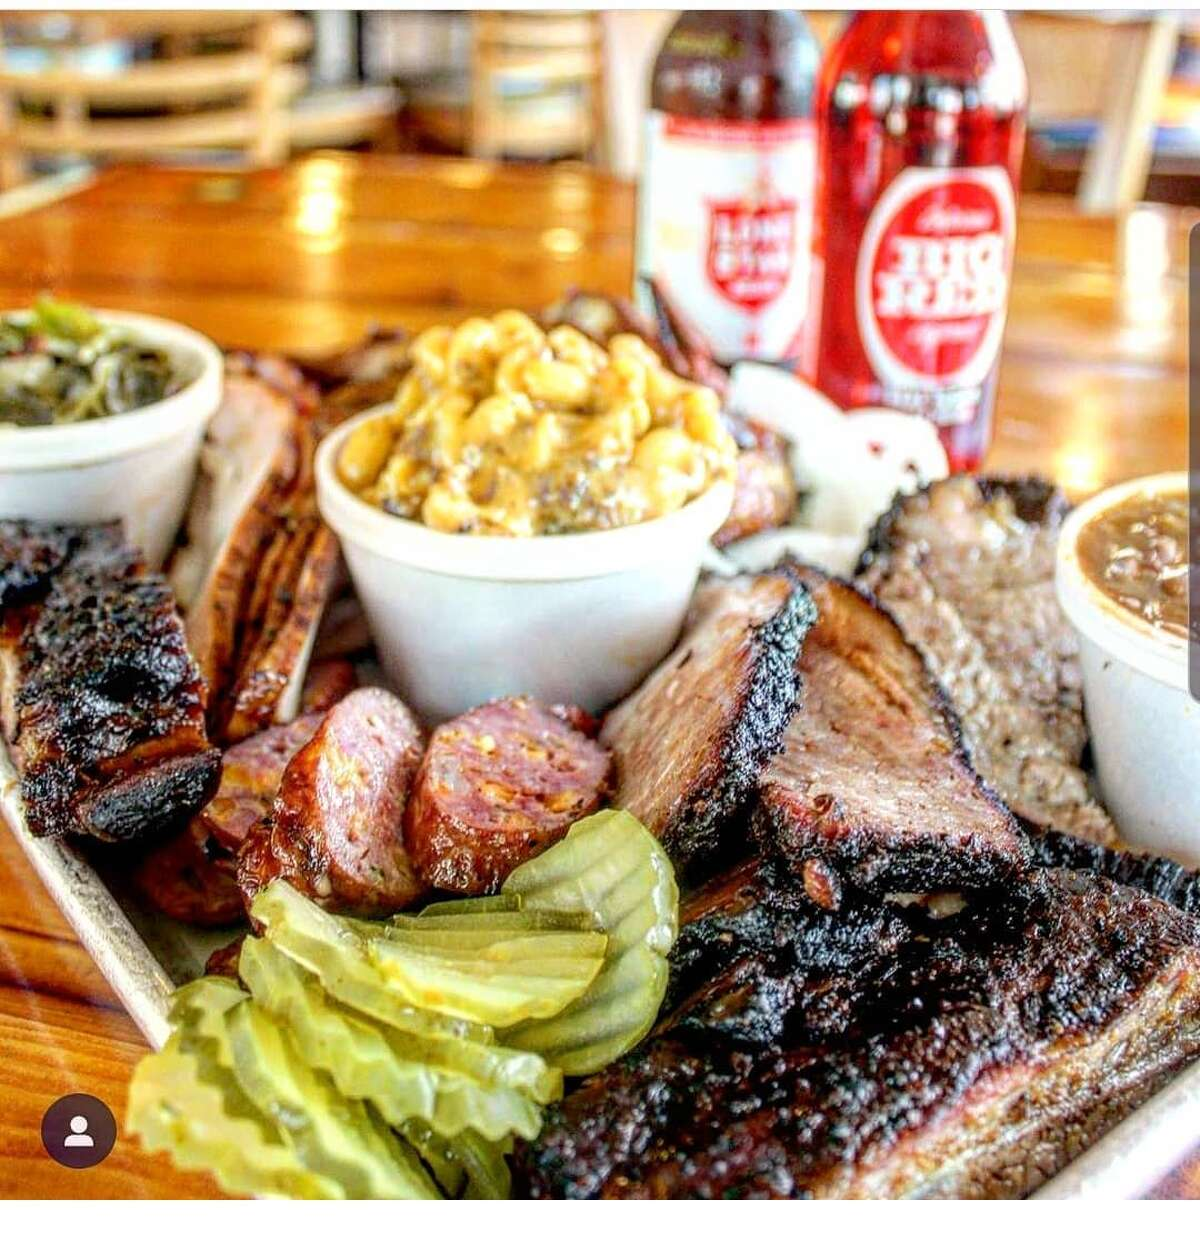 Conger has always loved the restaurant industry and wanted to do something different with BBQ beyond the traditional flavors most places have.